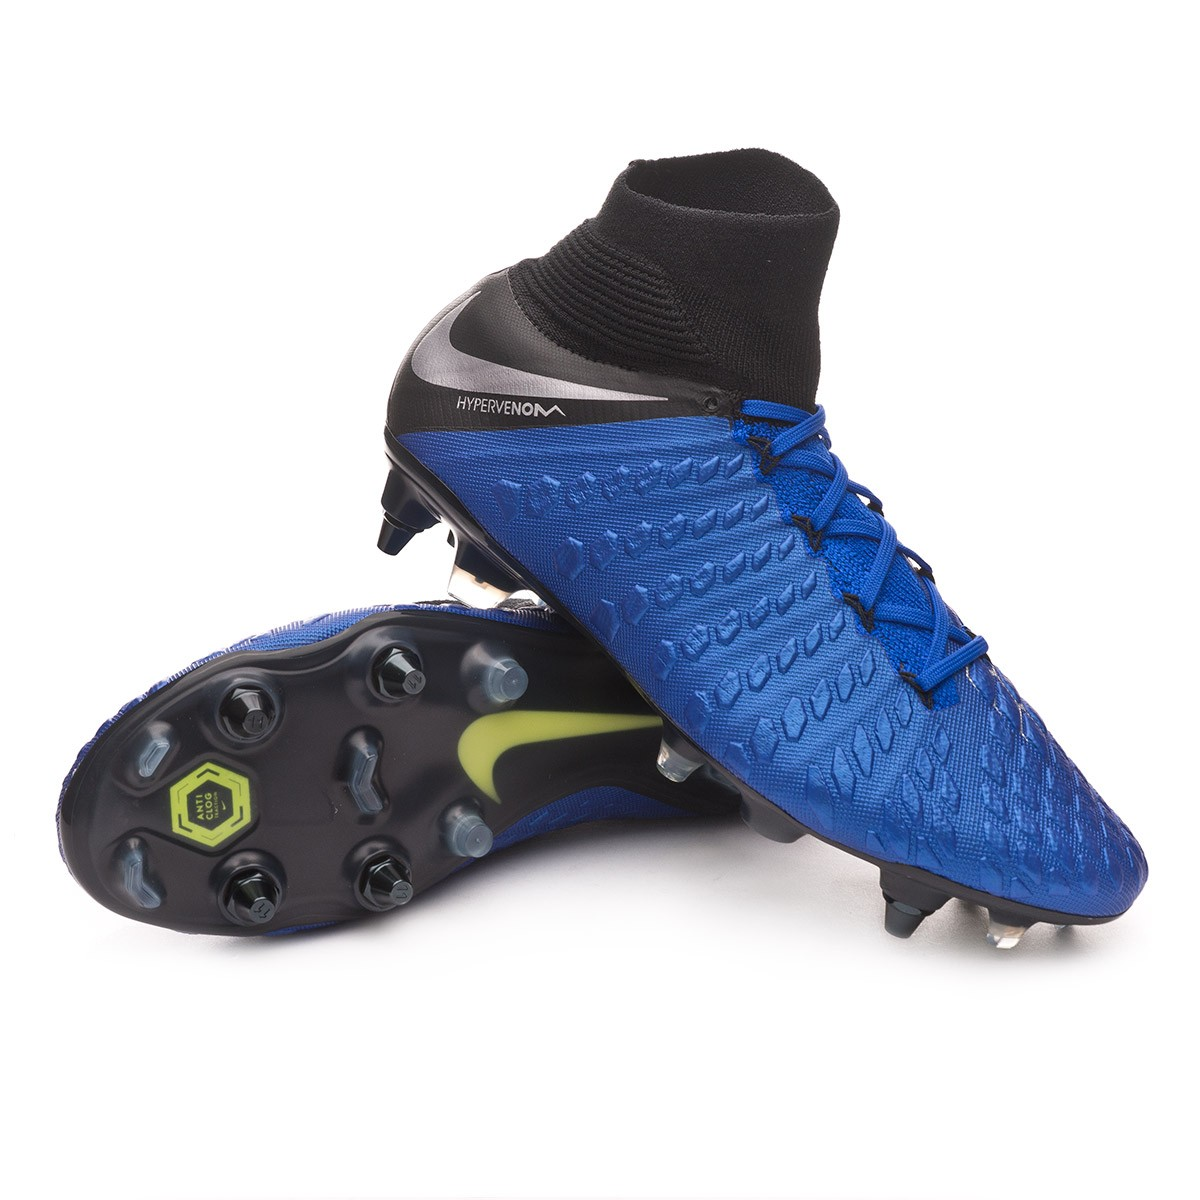 8599e1e3b Nike Hypervenom Phantom III Elite DF Anti-Clog SG-Pro Football Boots. Racer  blue-Metallic ...